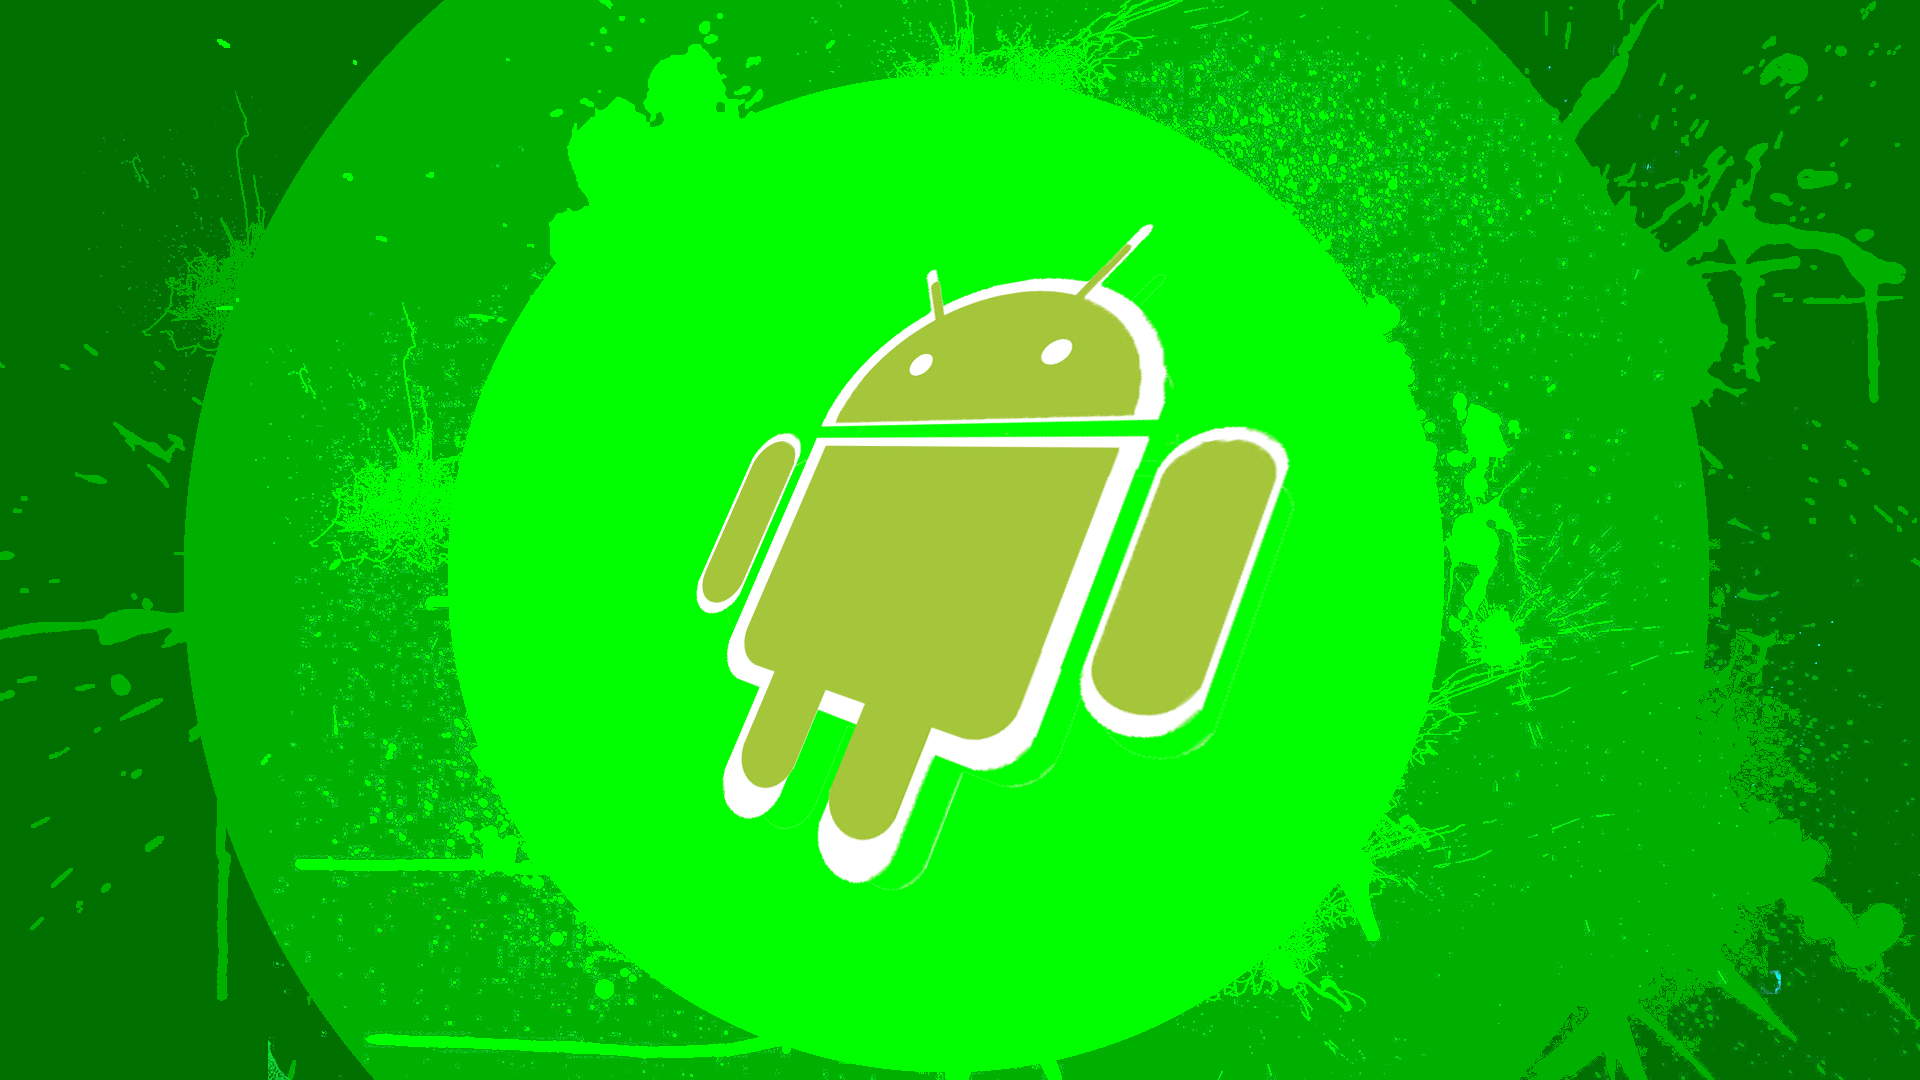 Free Hd Wallpapers For Android Group 67: Green Android Wallpaper (104 Wallpapers)